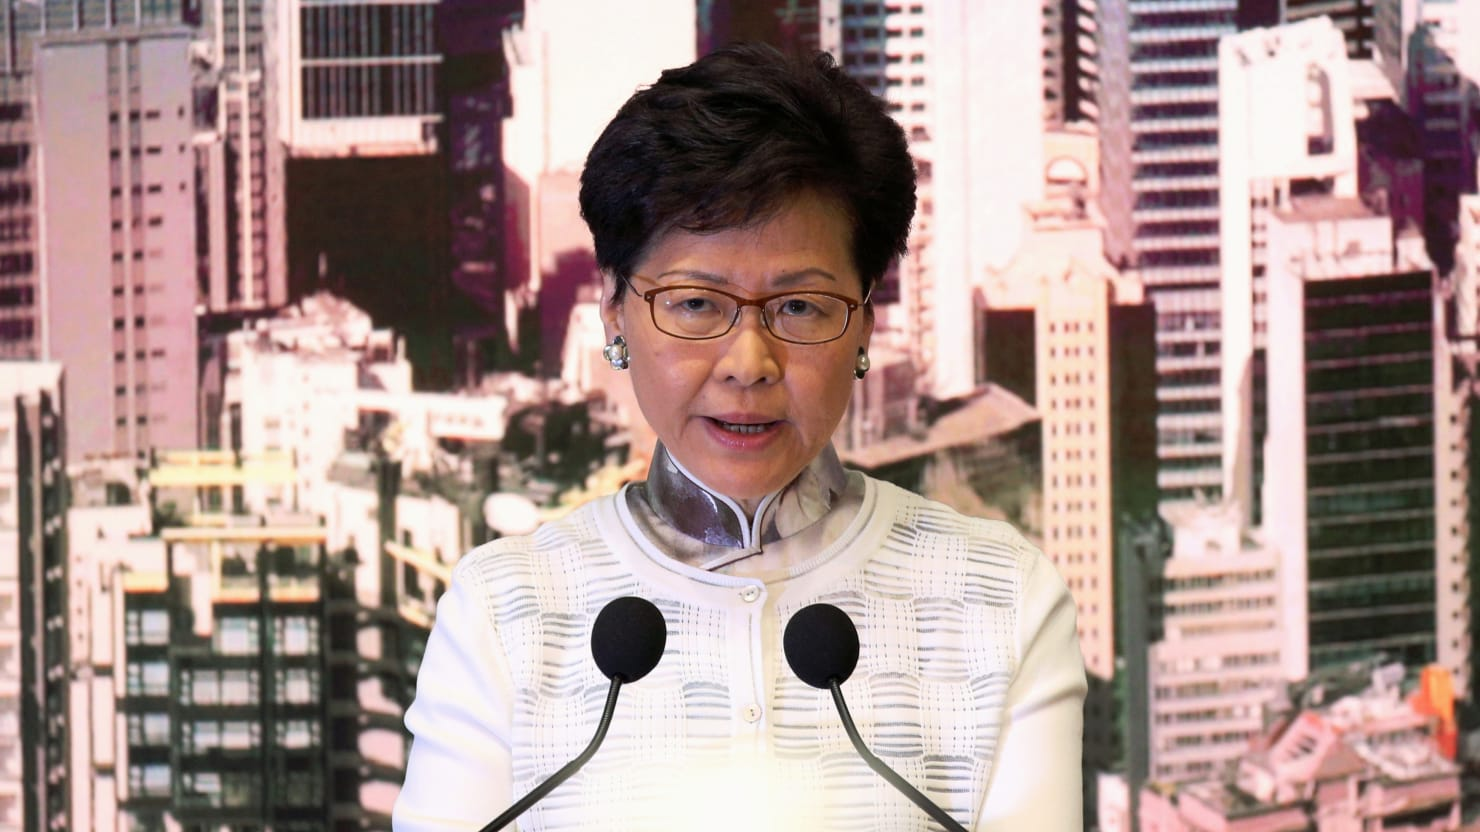 Hong Kong Leader Carrie Lam Suspends Controversial Extradition Bill